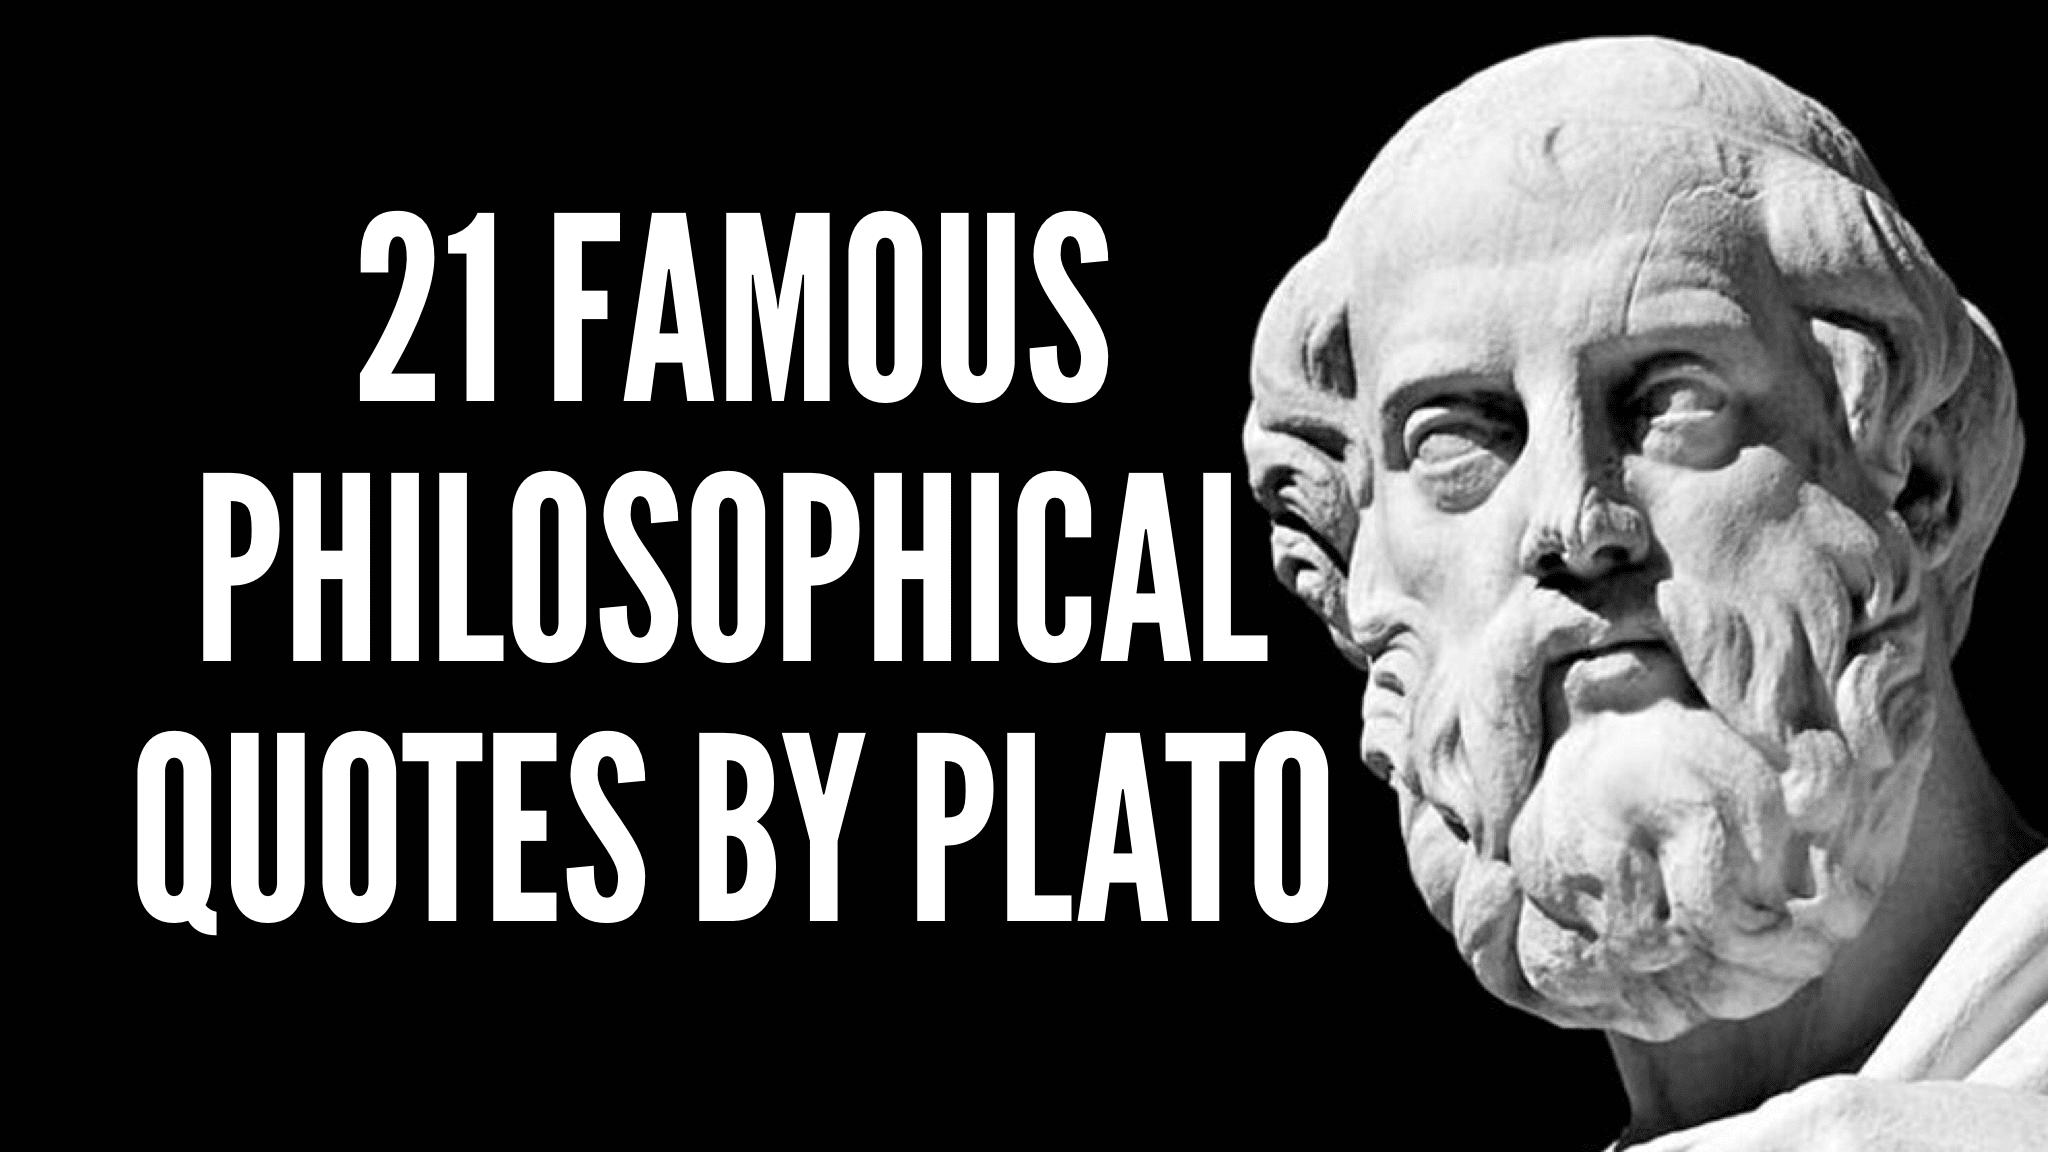 21 Famous Philosophical Quotes By Plato